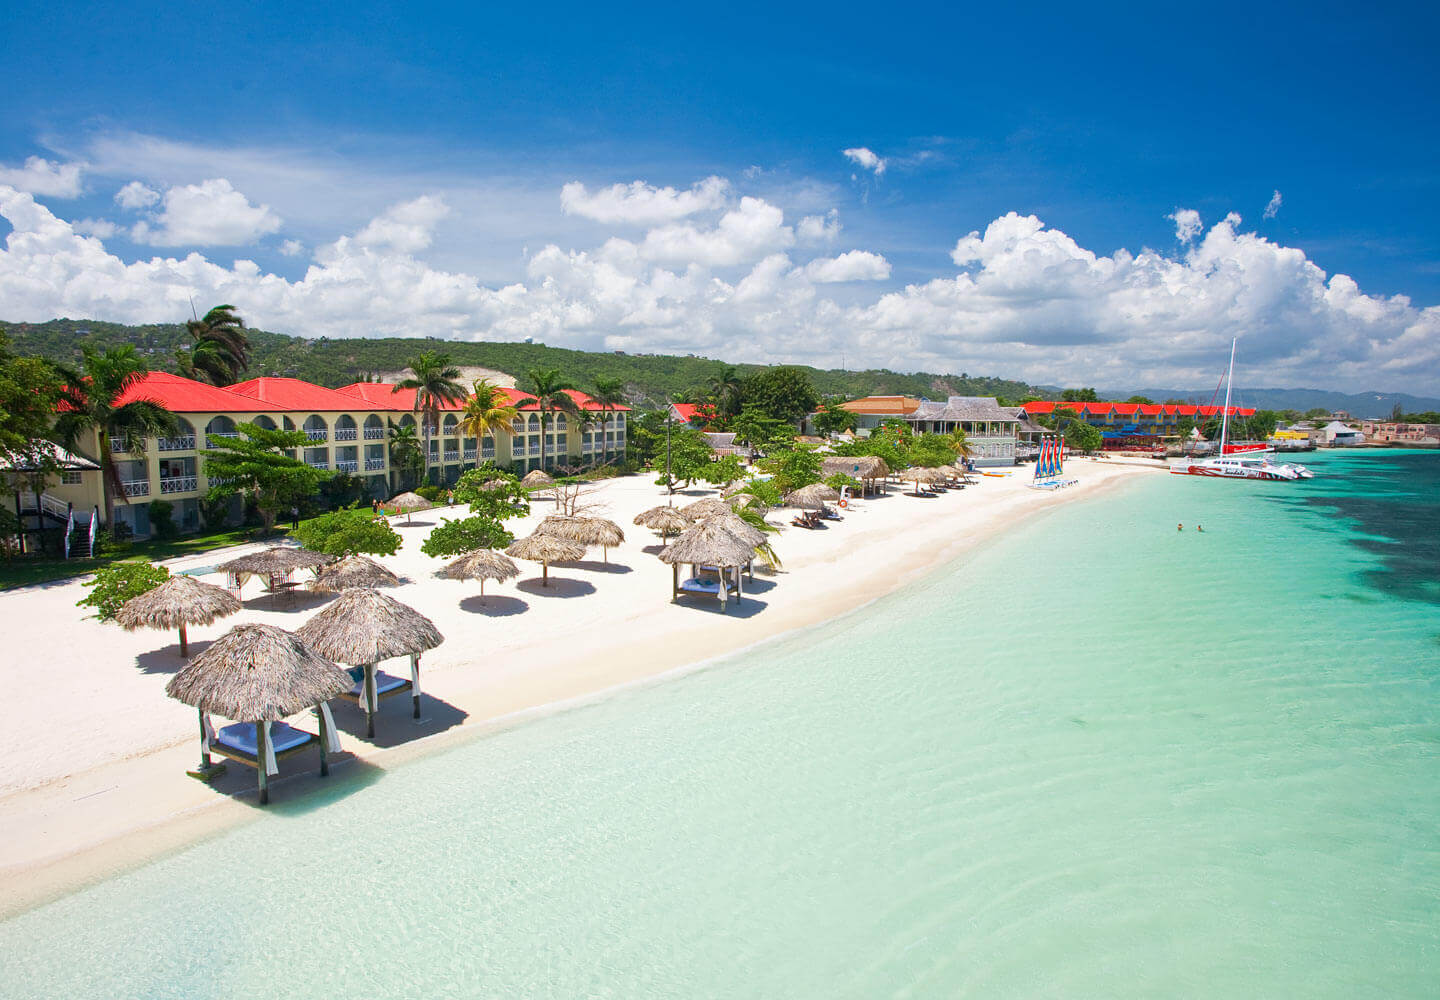 Sandals Montego Bay - Destination Weddings